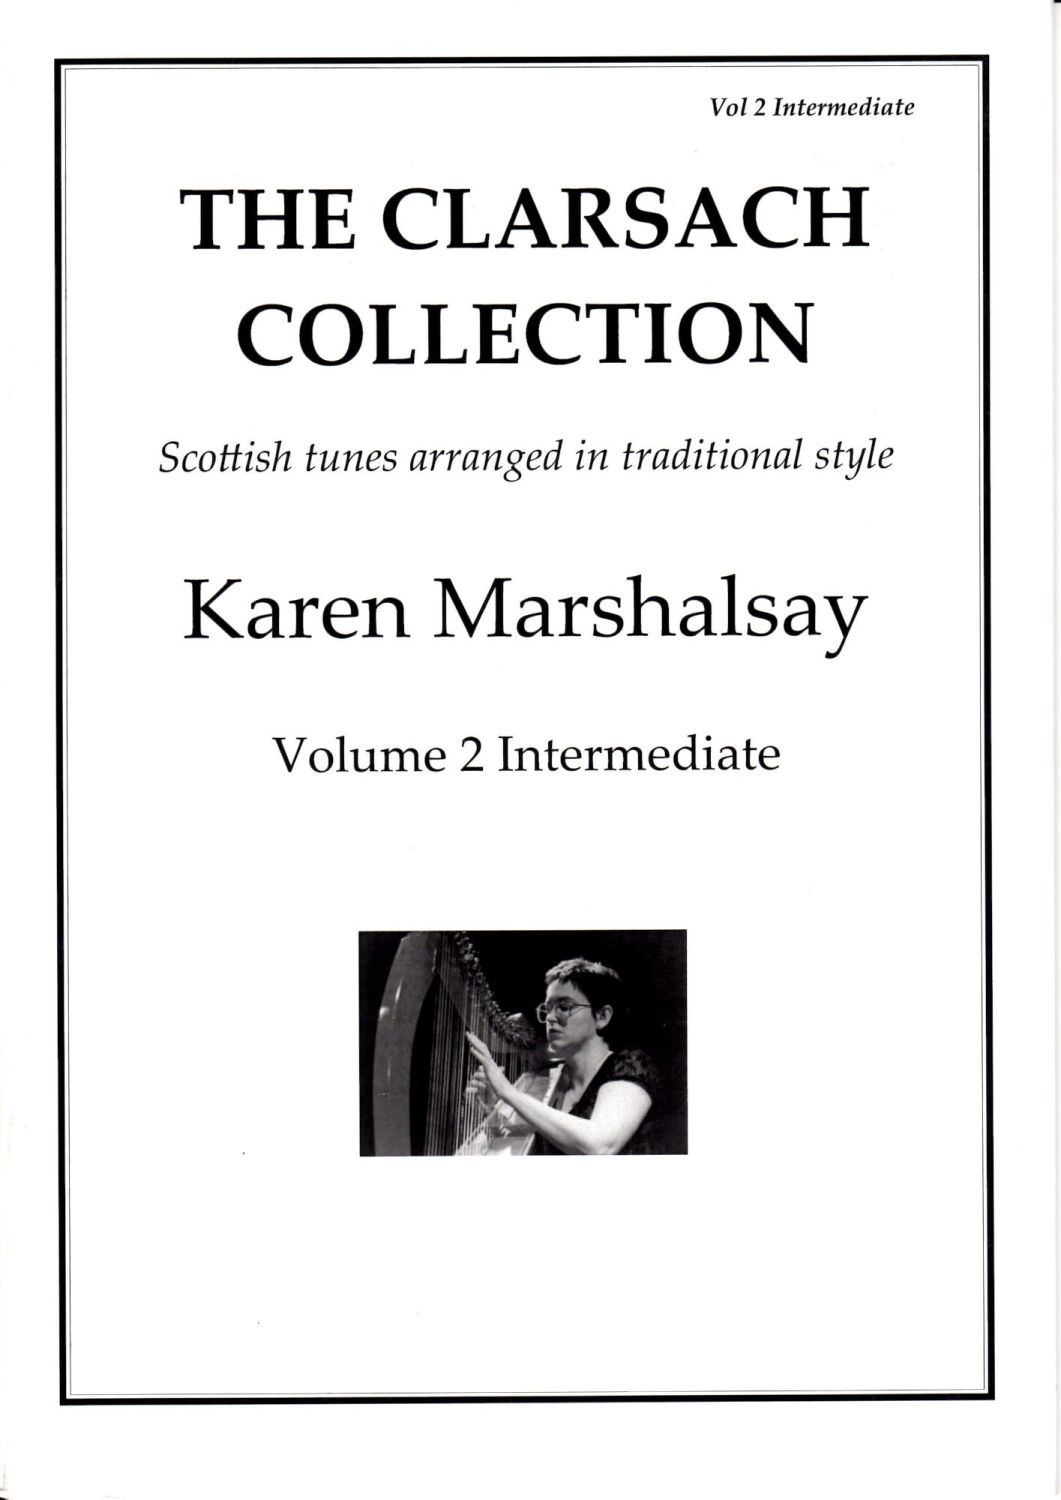 The Clarsach Collection Vol. 2 - Karen Marshalsay